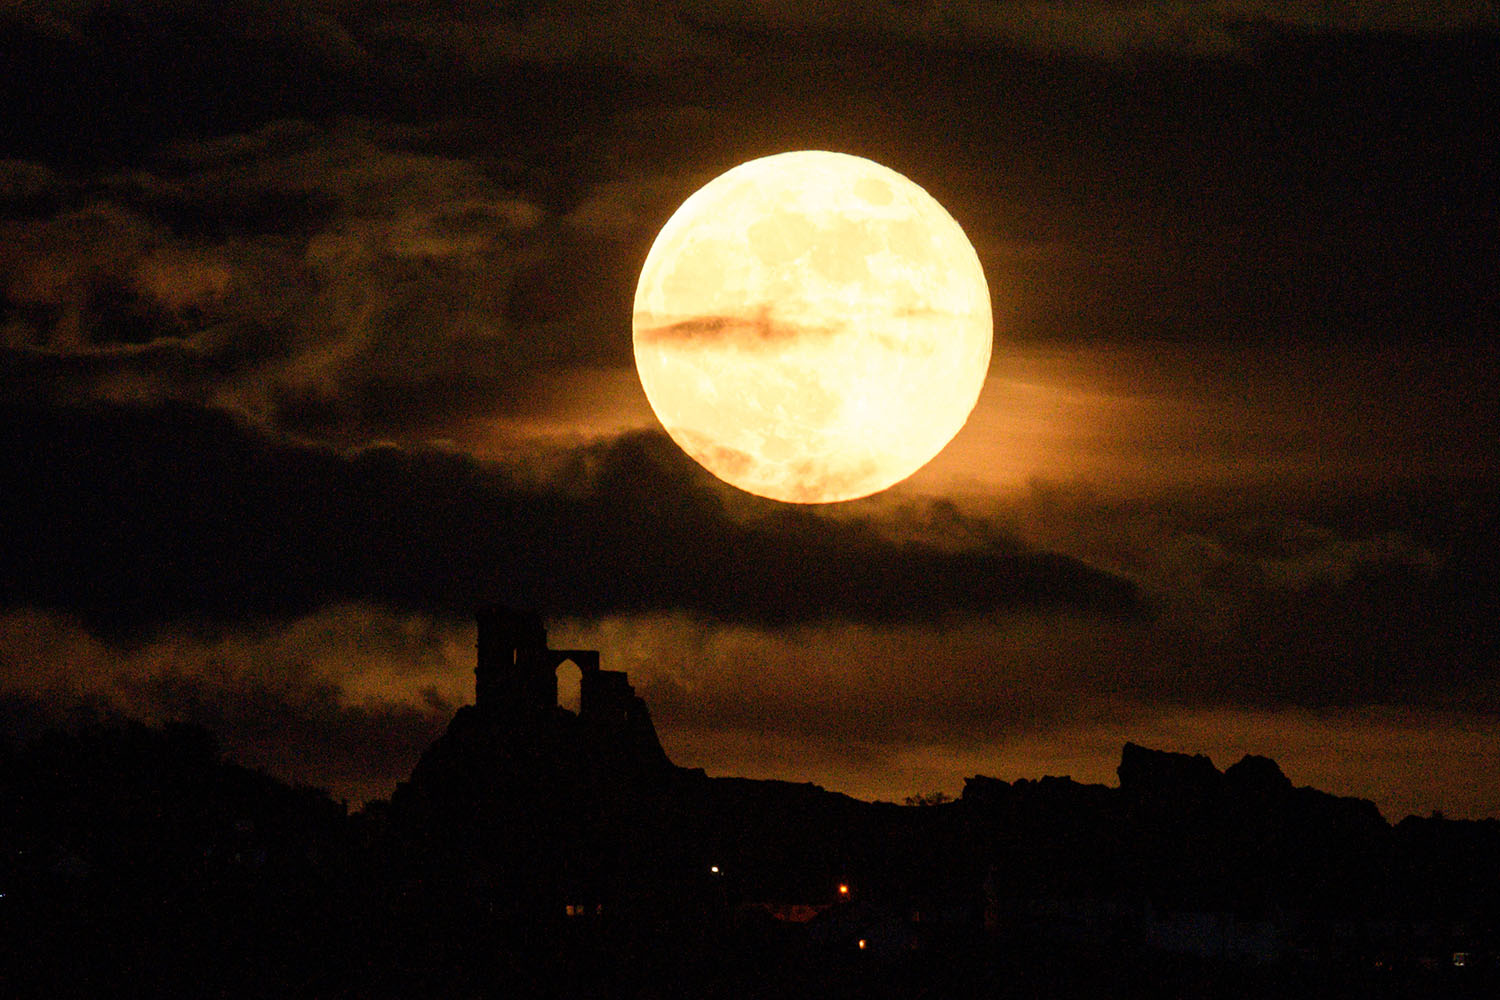 A supermoon rises over Mow Cop Castle near Stoke-on-Trent in central England on May 7. OLI SCARFF/AFP via Getty Images